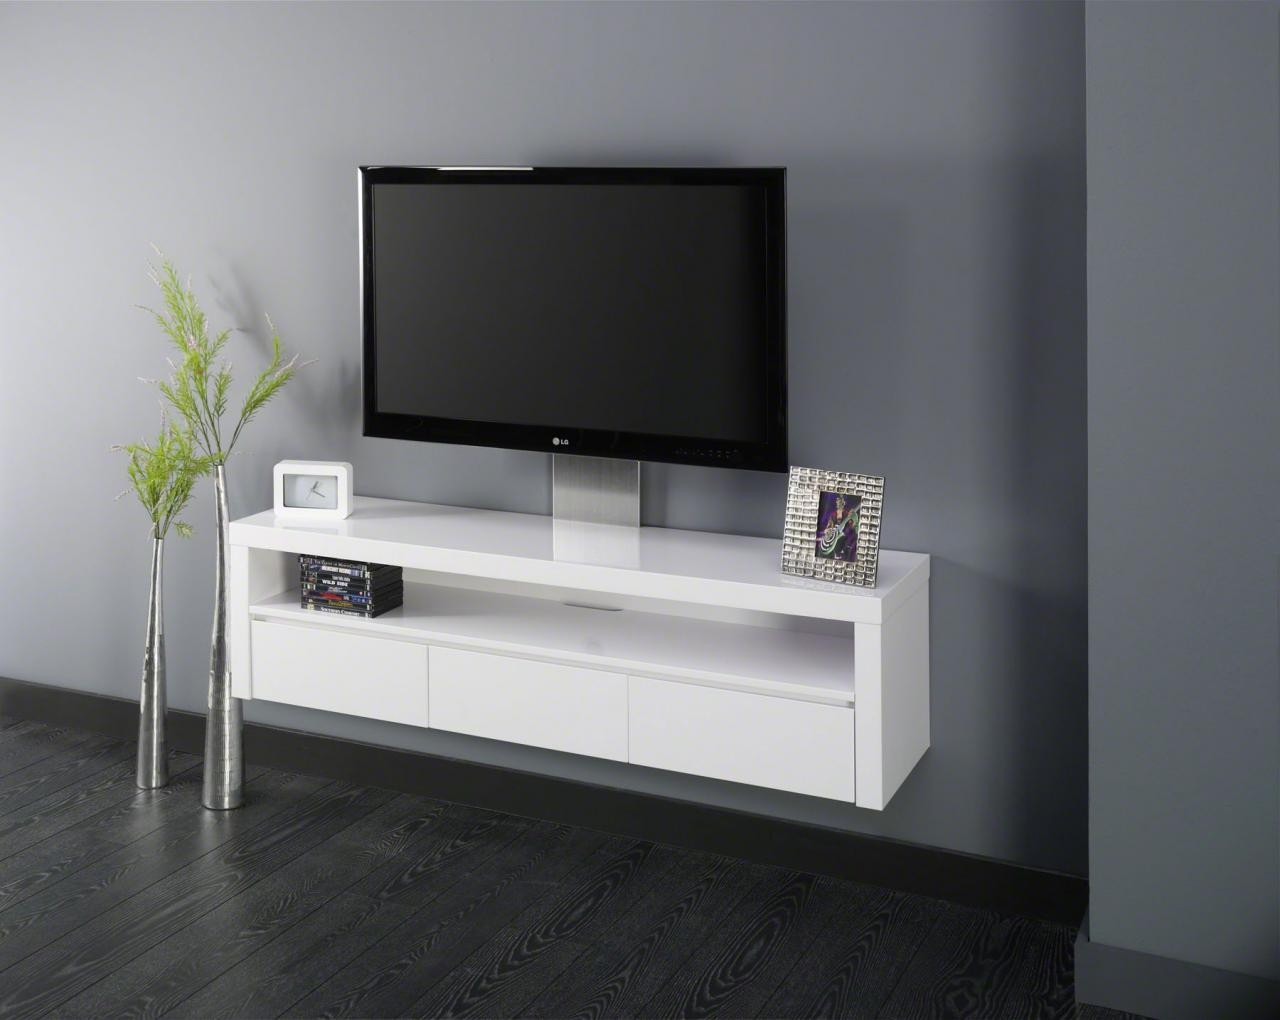 meuble suspendu pour tele. Black Bedroom Furniture Sets. Home Design Ideas